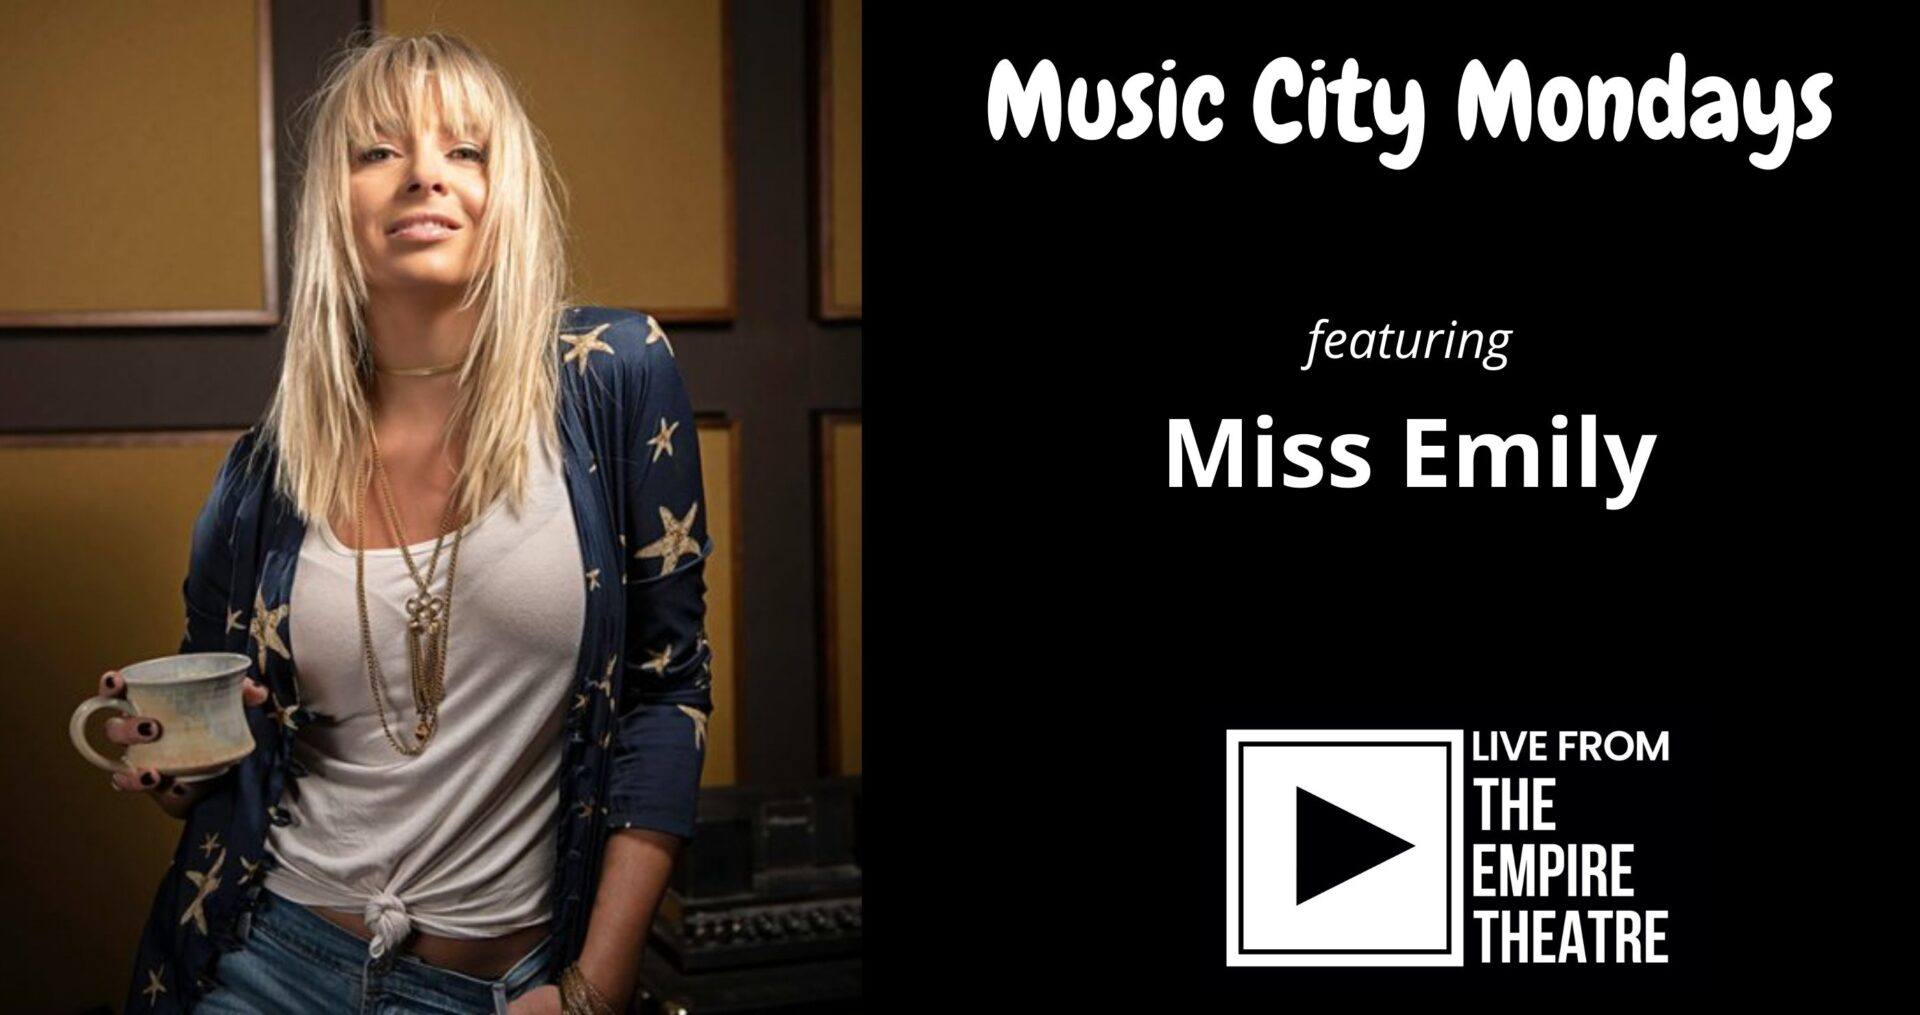 Music City Mondays featuring Miss Emily